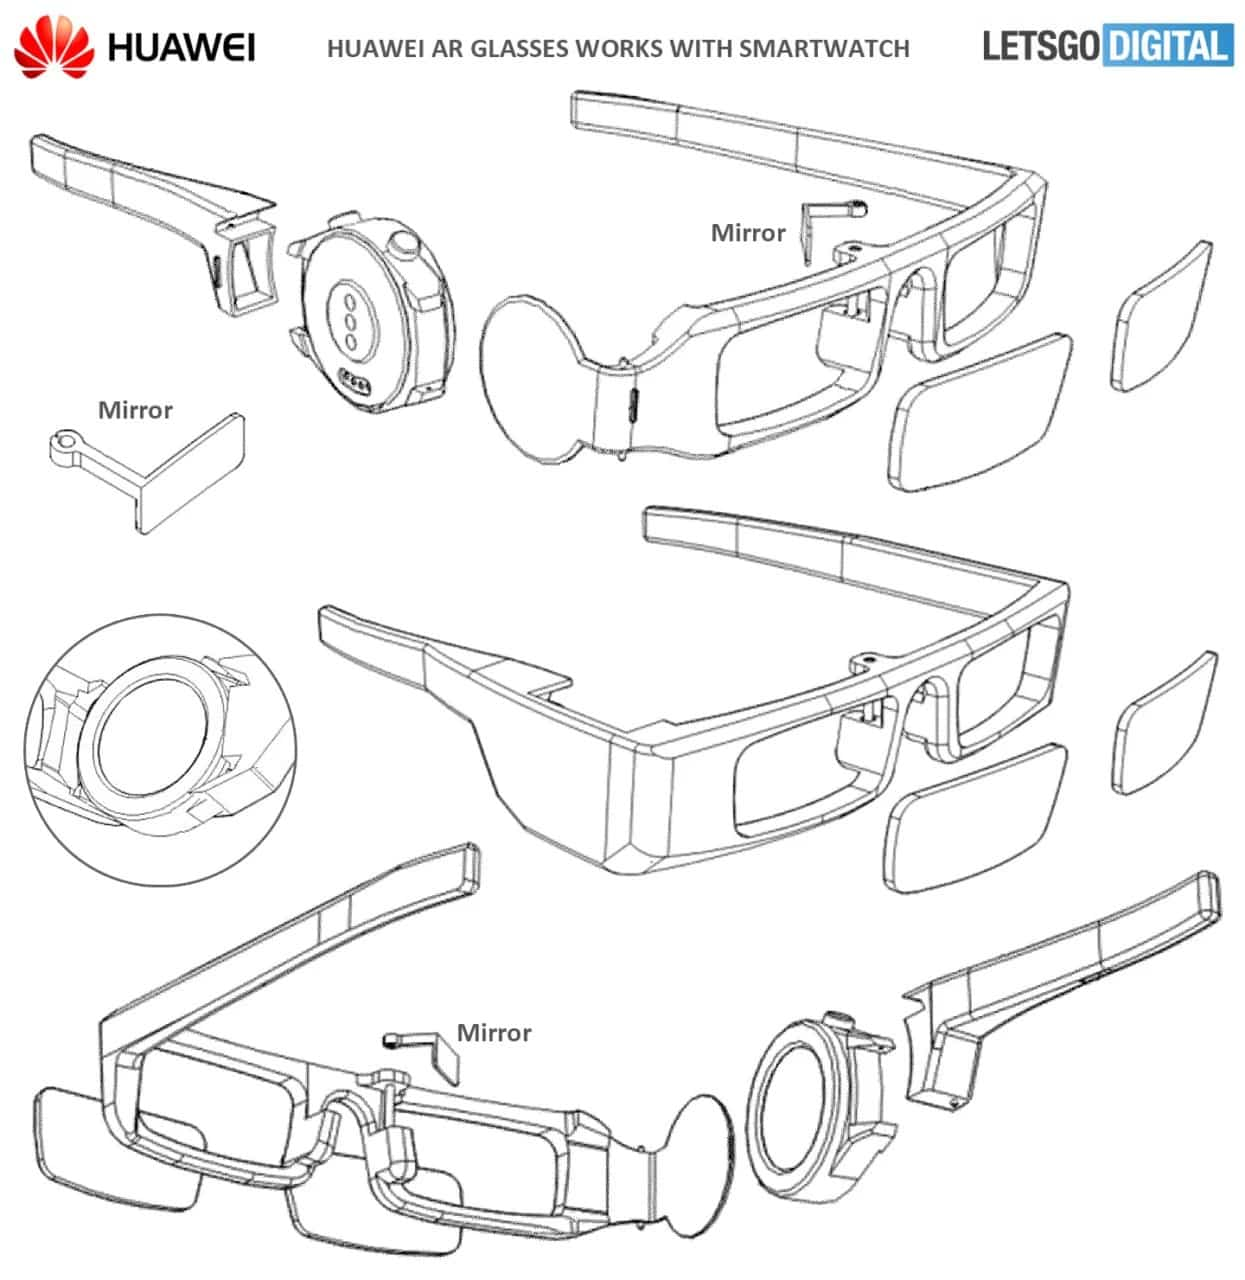 Huawei patented augmented reality glasses